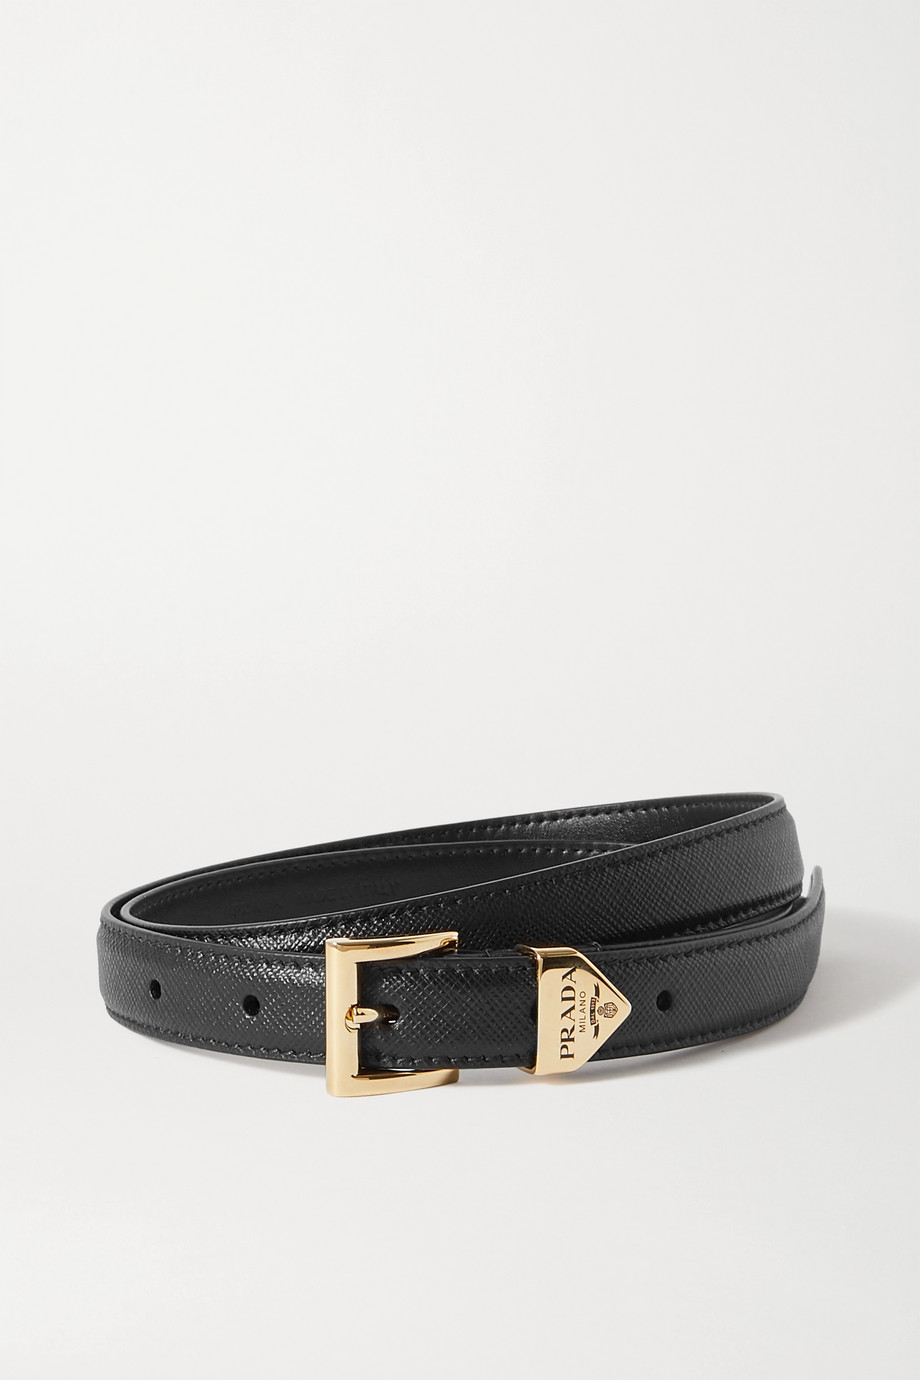 Prada Textured-leather belt